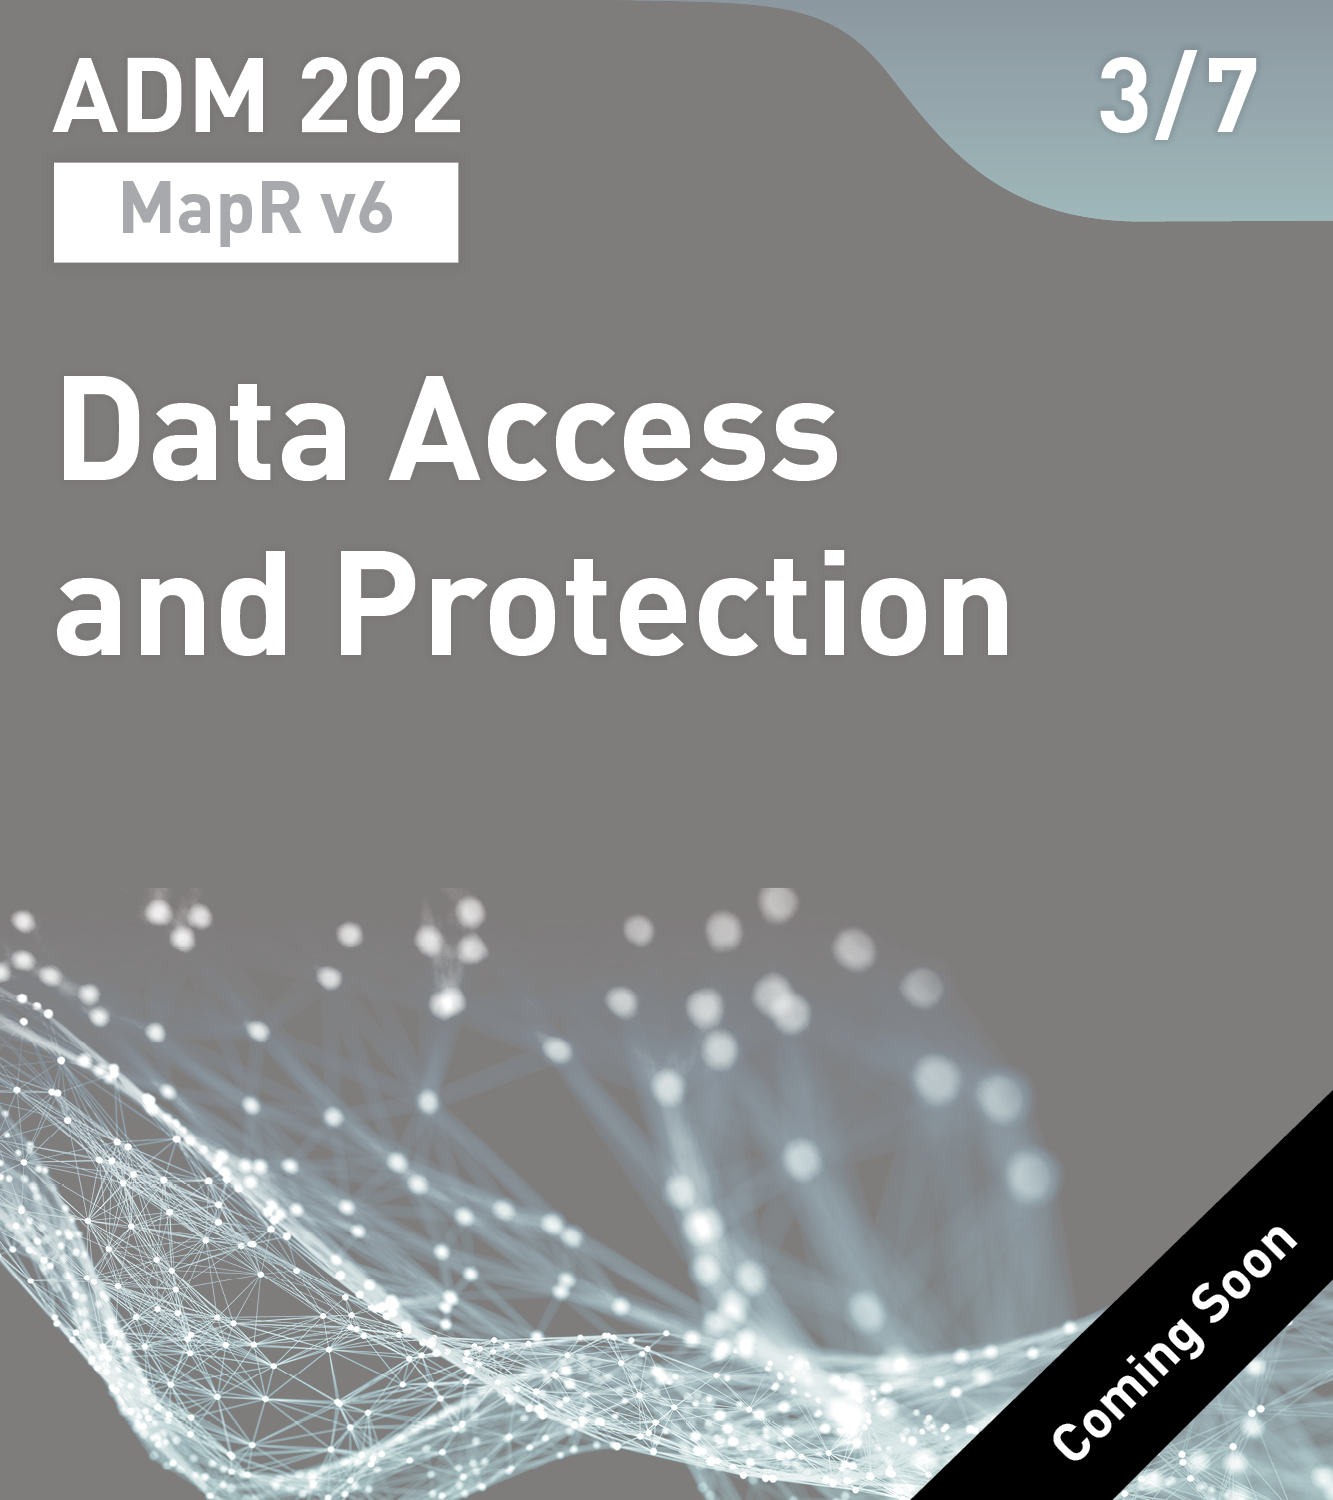 ADM 202 - Data Access and Protection (MapR v6)